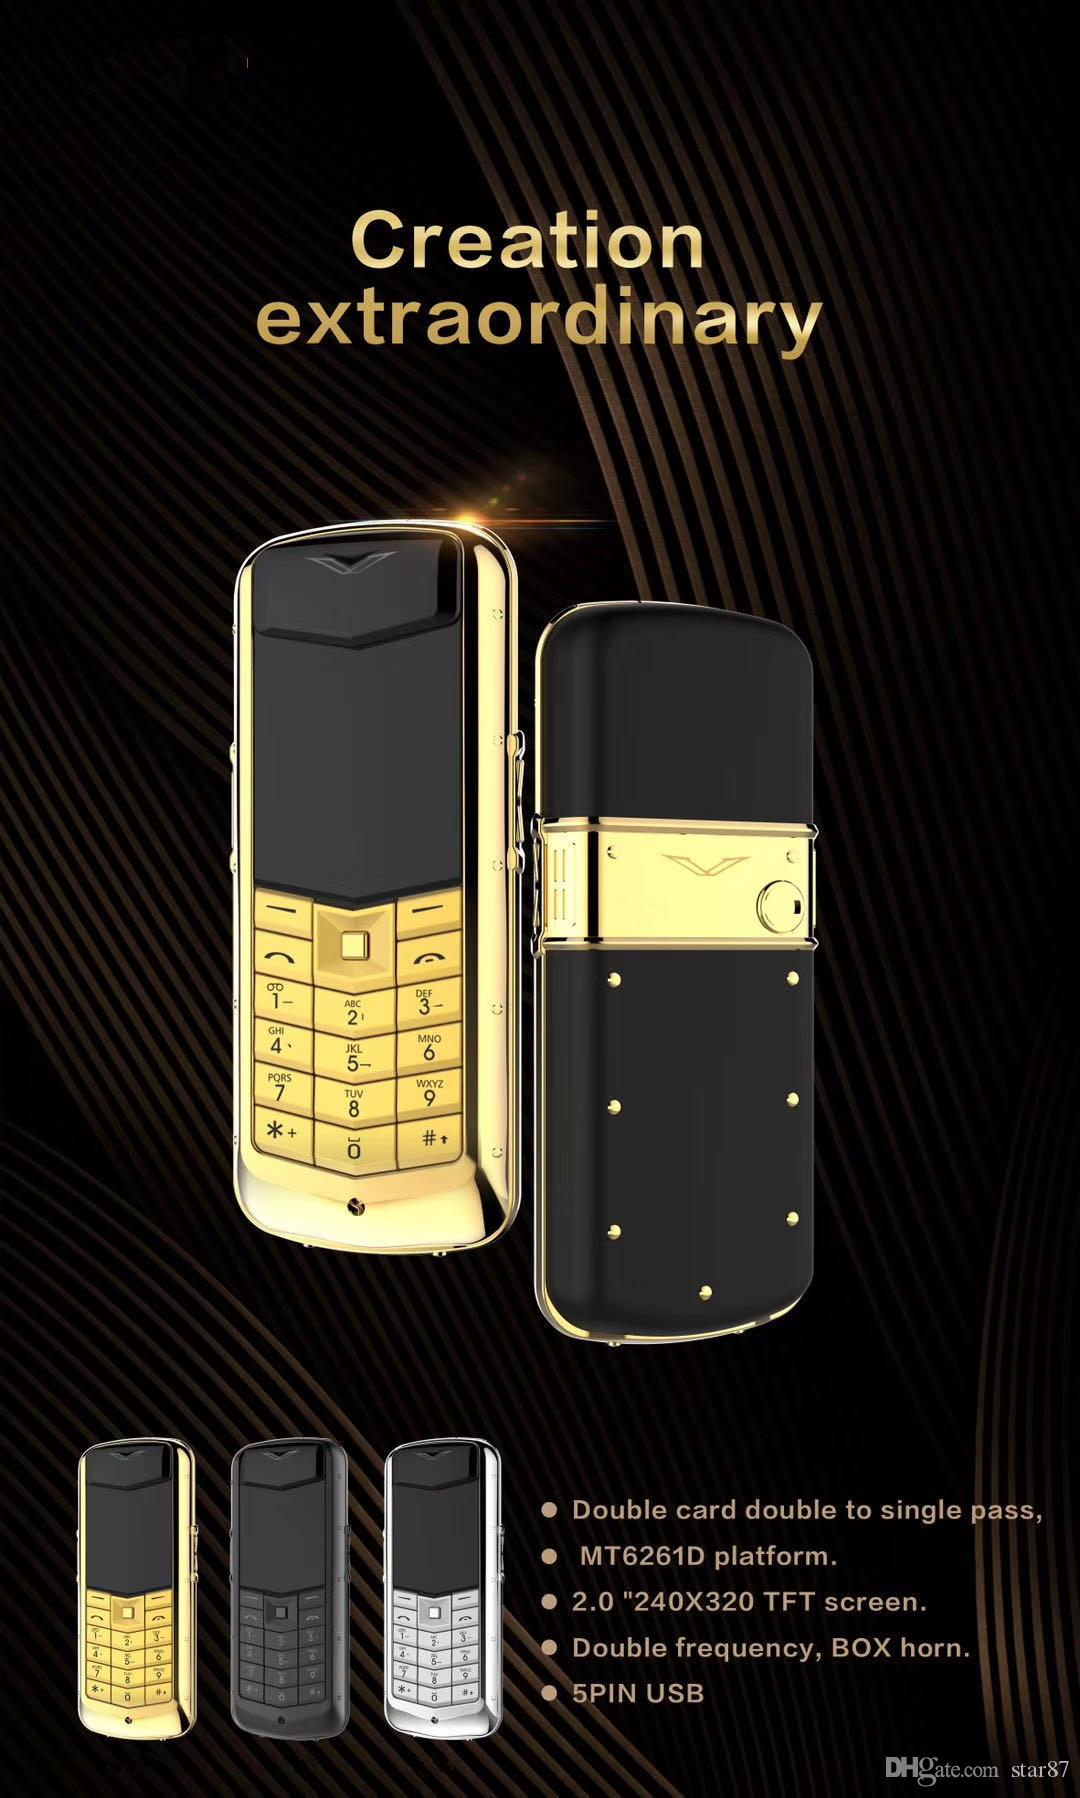 Luxury constellation stainless steel Gold cell Phone Metal Body Dual Sim card No Camera MP3 Quad Band celular Leather Signature Mobile Phone